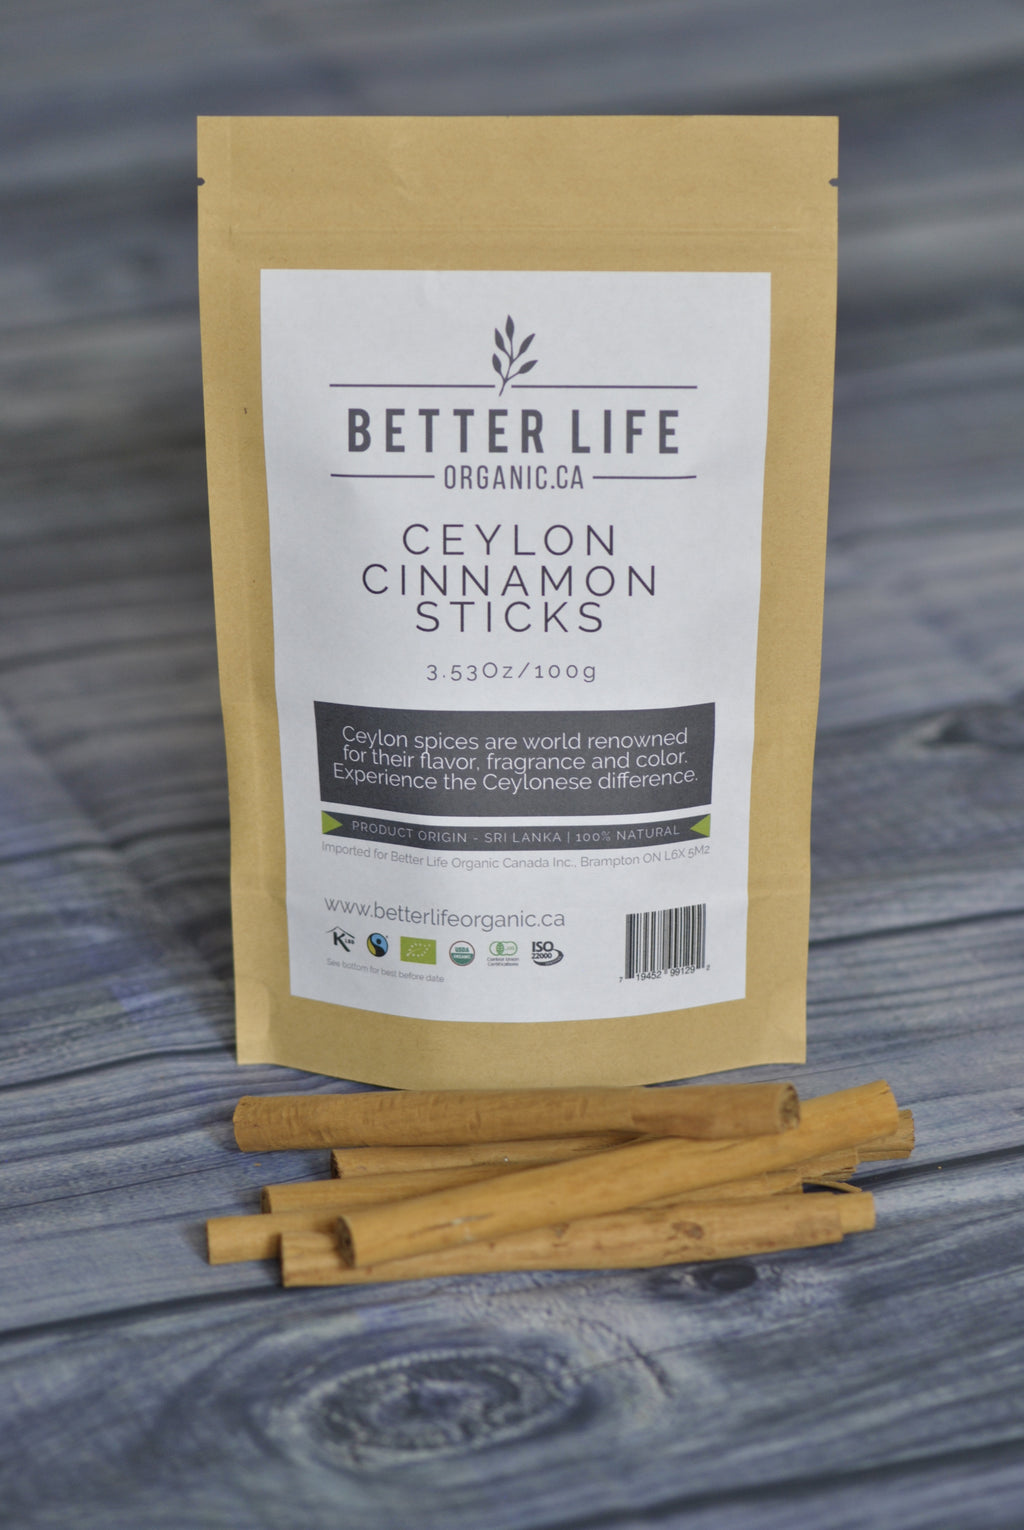 Organic Ceylon Cinnamon Sticks -  Better Life Organic